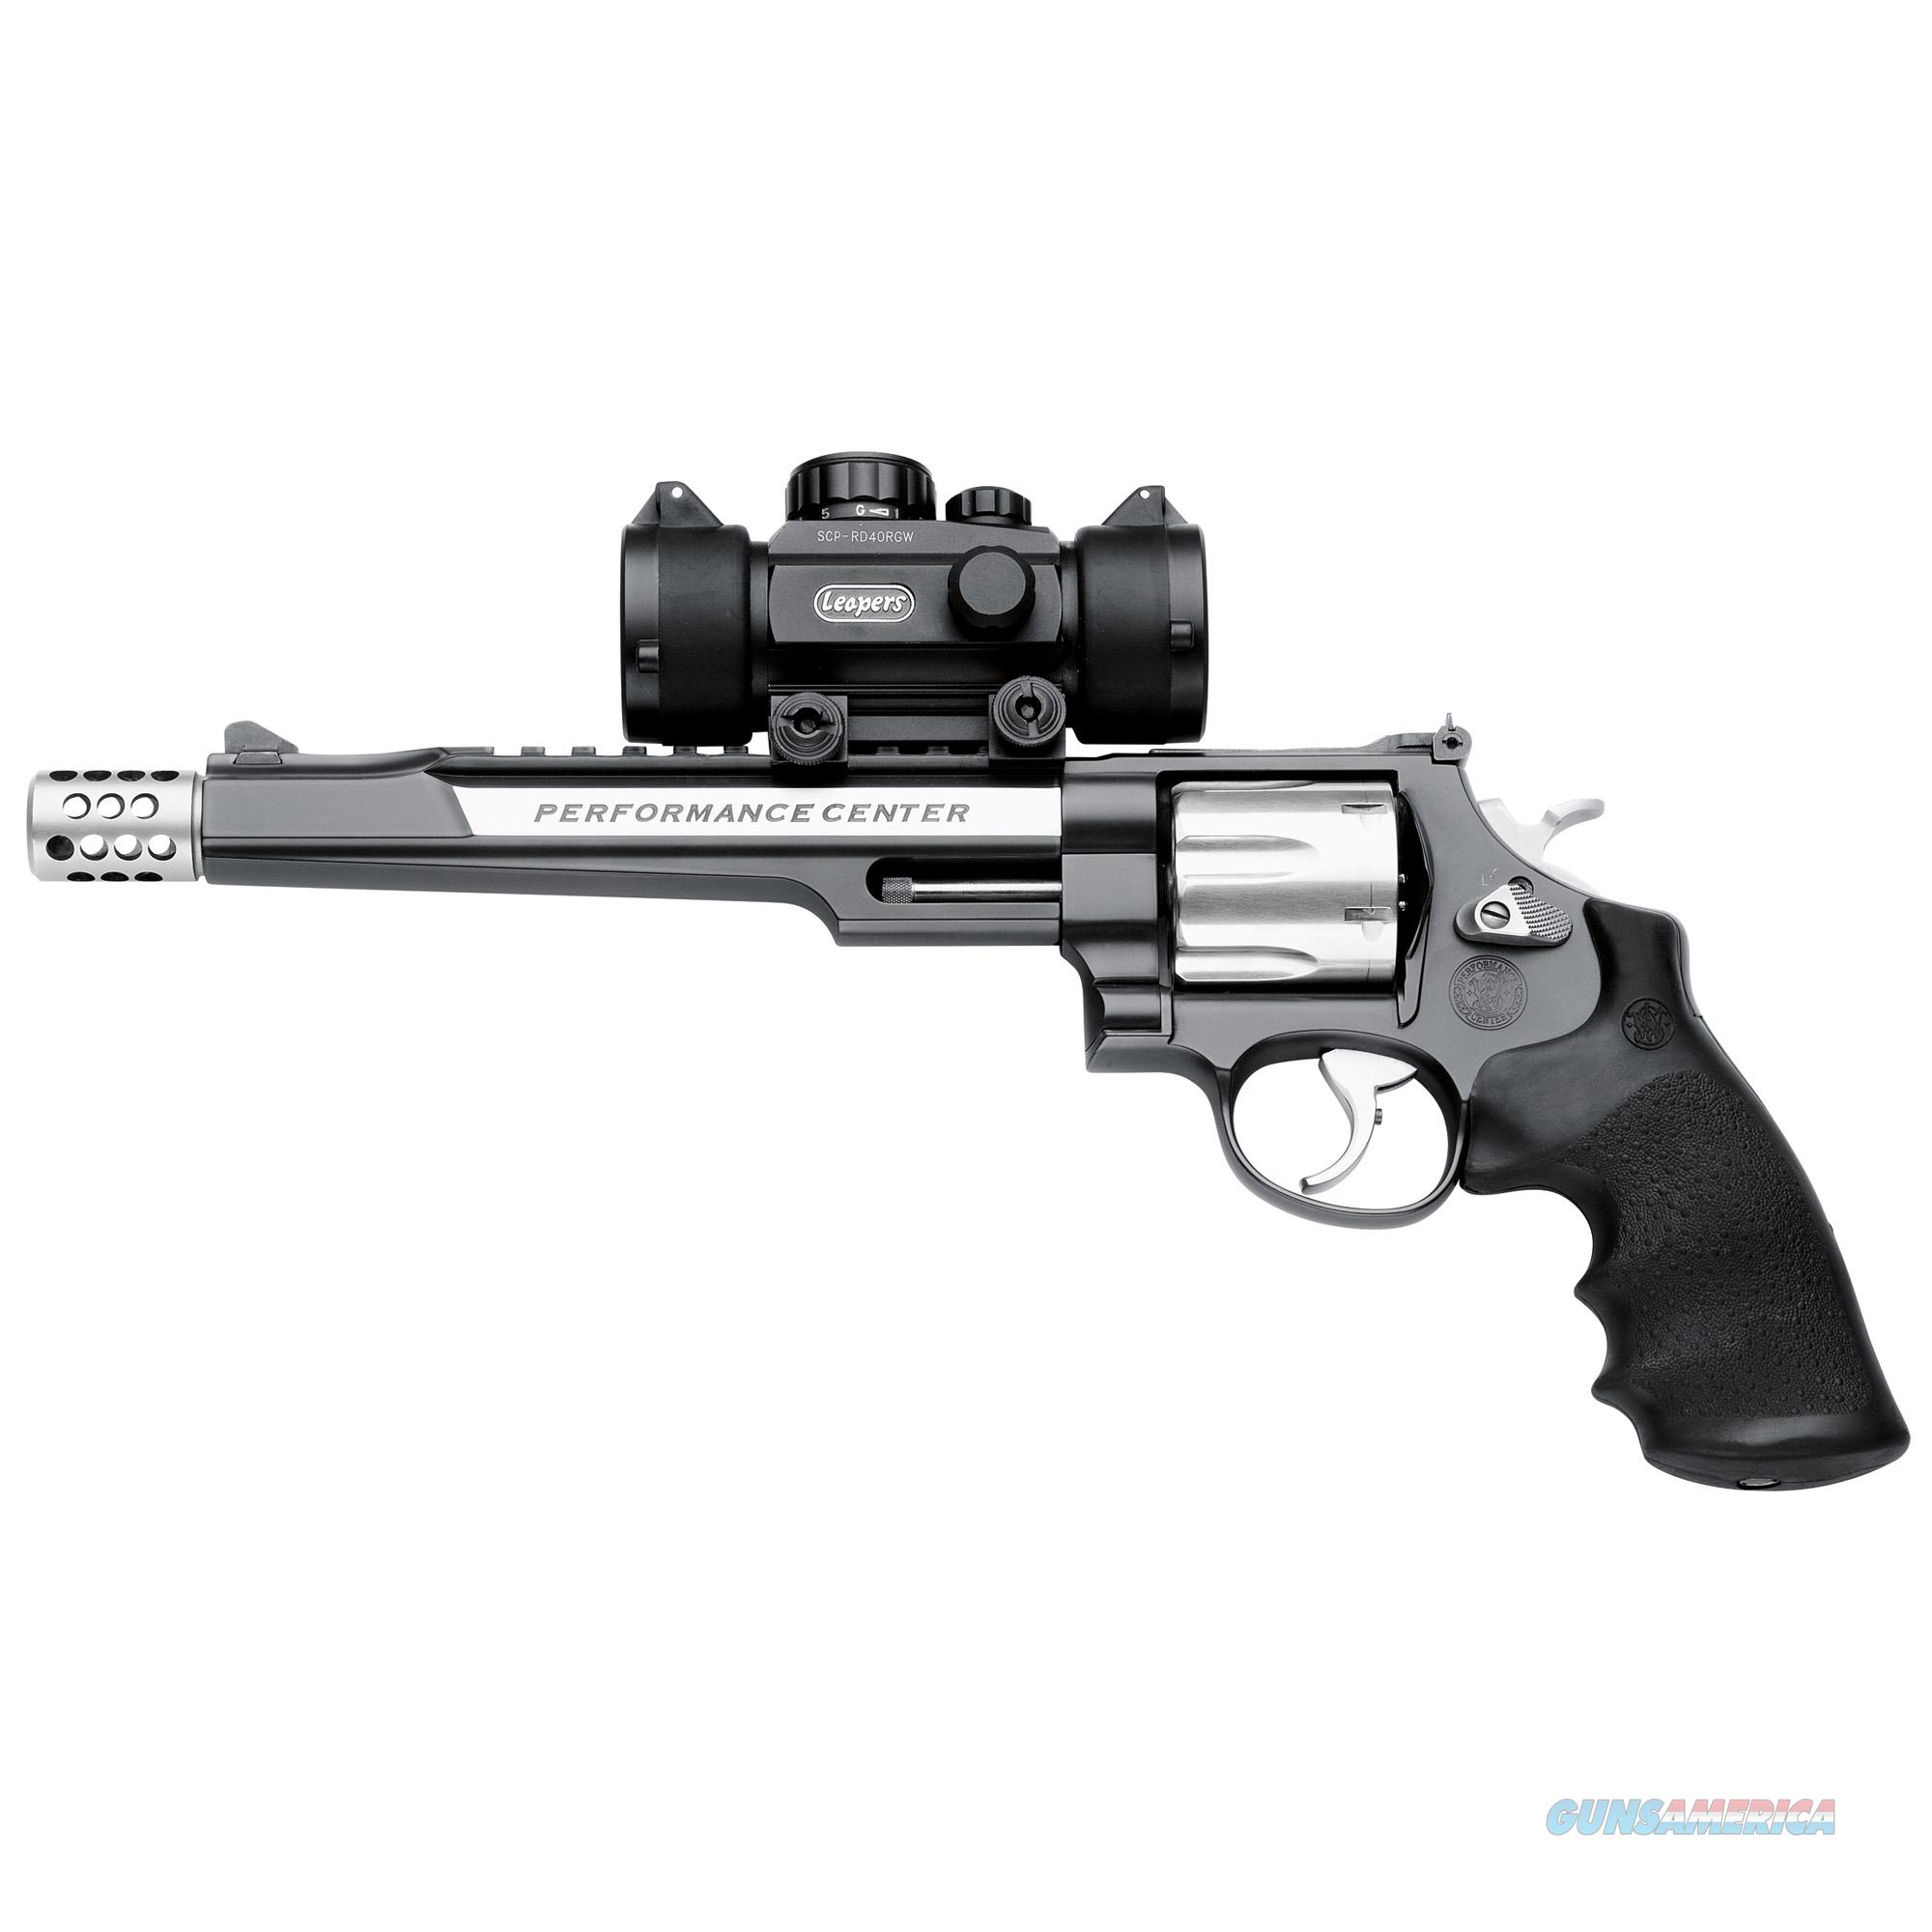 S&W 629 PC Hunter Red Dot .44MAG Layaway NoCCFee 170318  Guns > Pistols > Smith & Wesson Revolvers > Performance Center